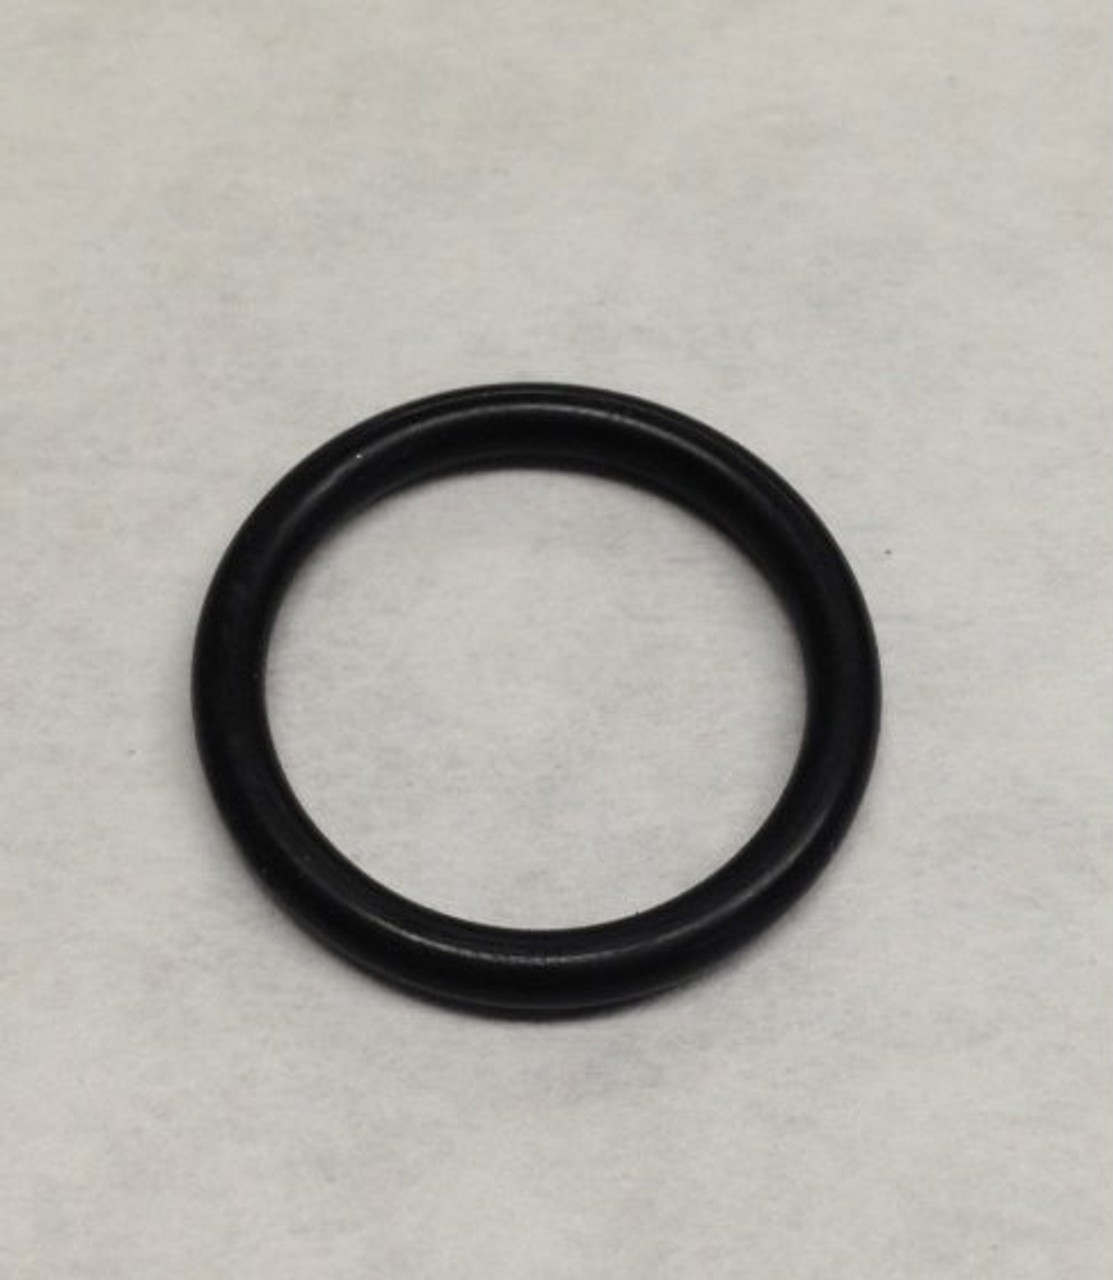 Talsa H-245 - H Series -- Piston Locking Bolt O-Ring - 0109